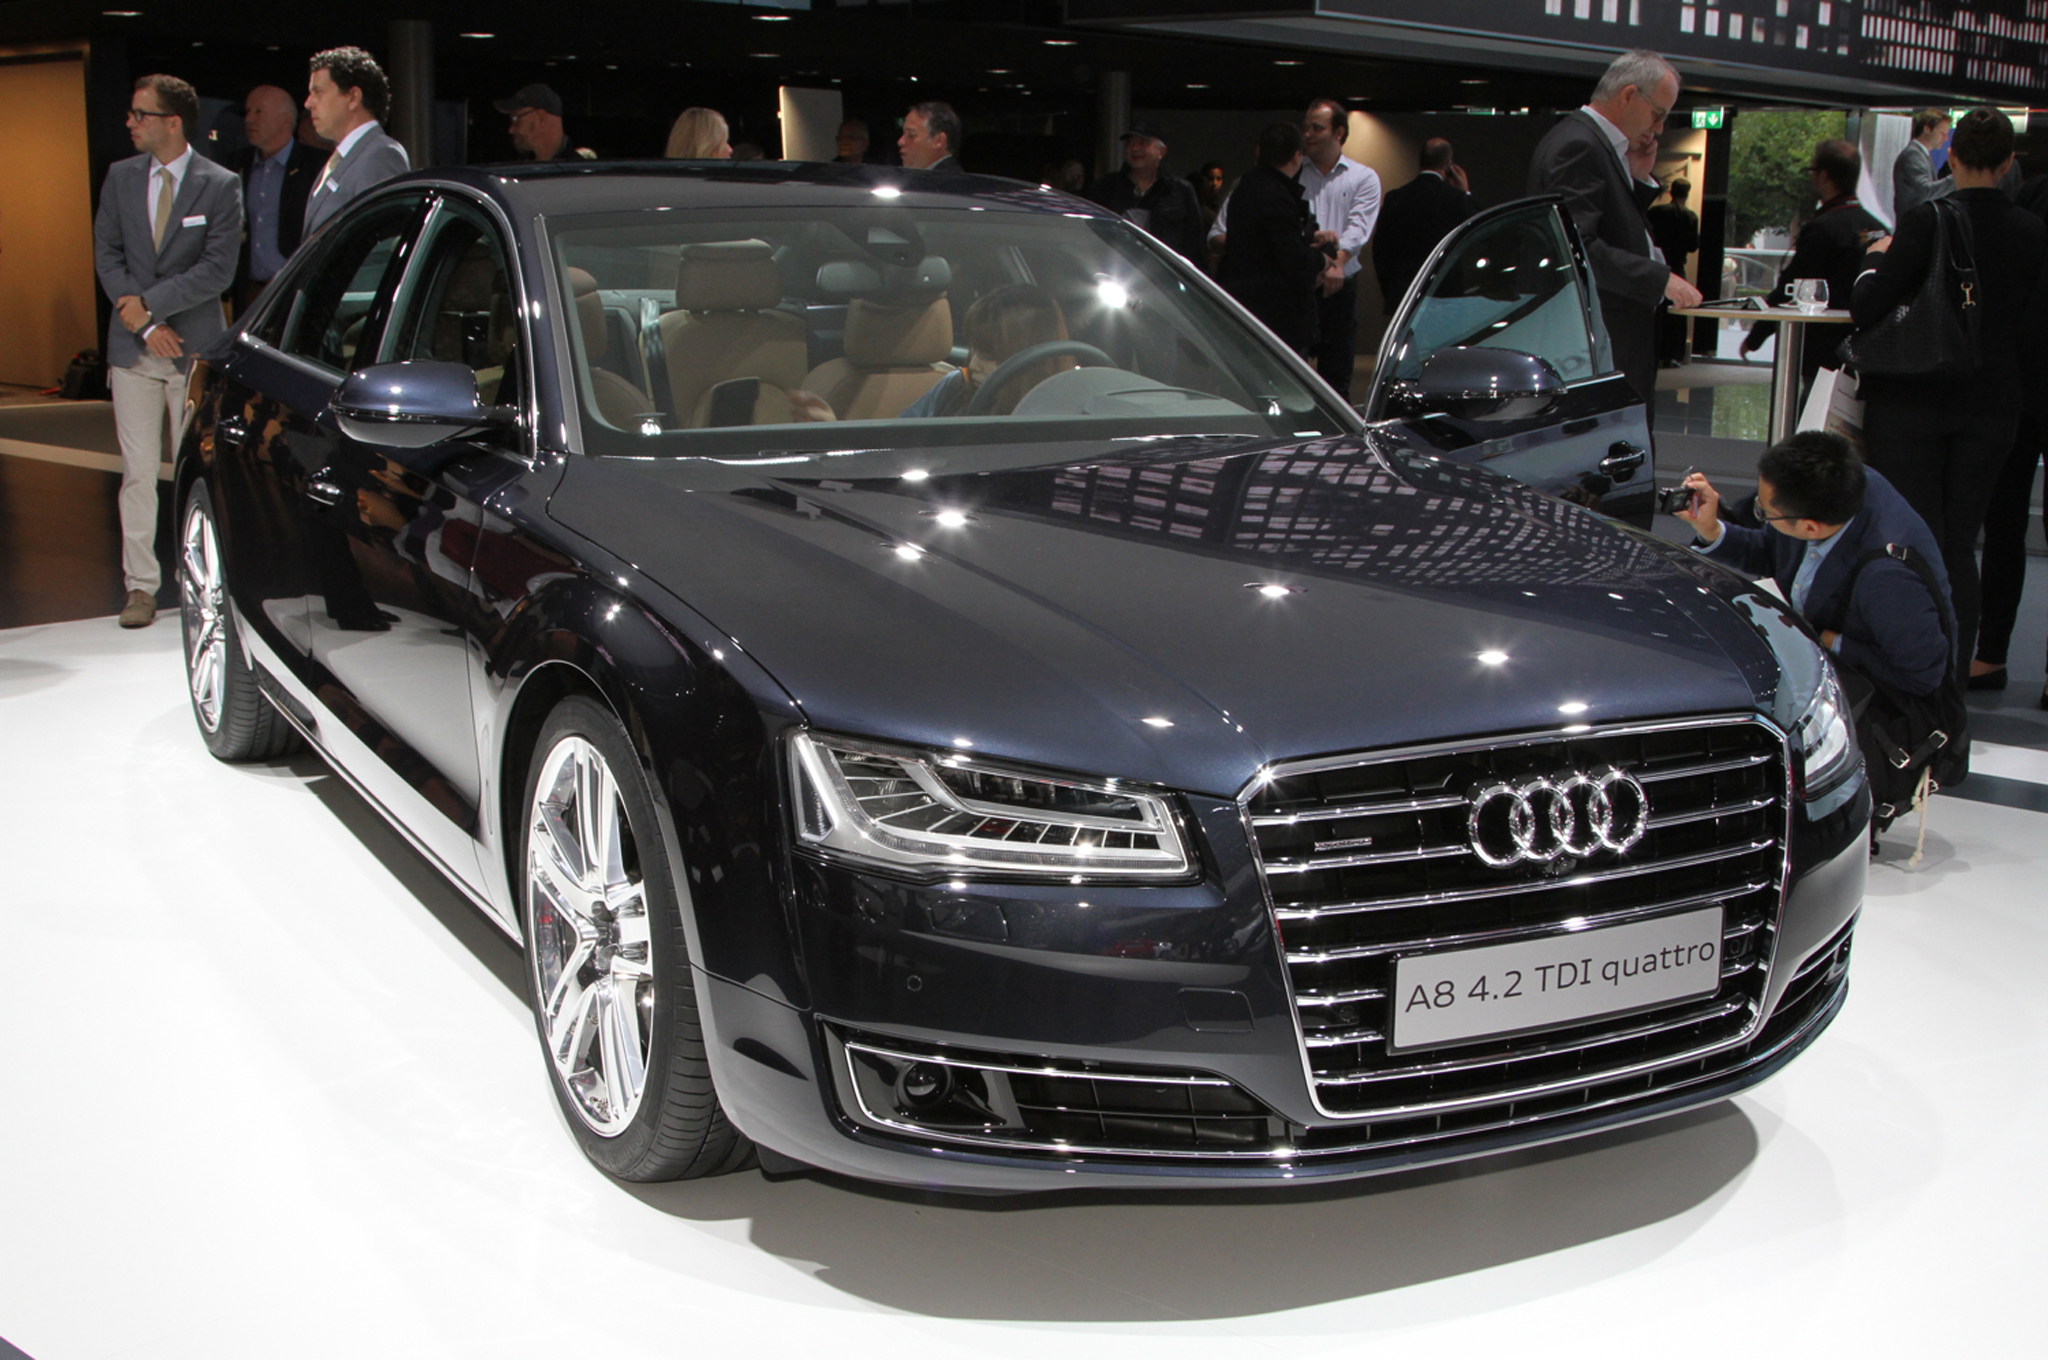 Delightful 2015 Audi A8 First Look